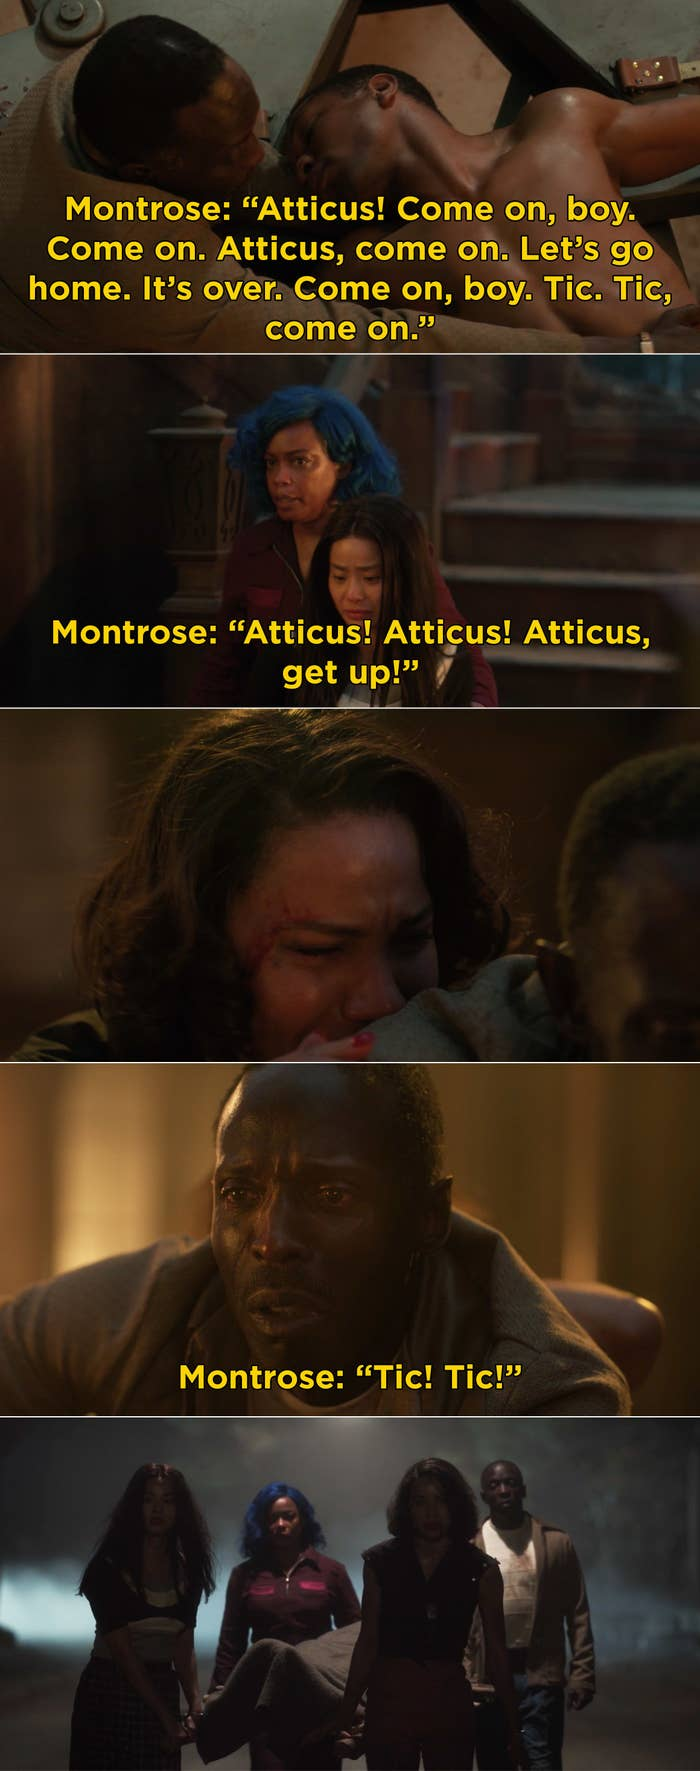 Montrose calling out to Atticus and trying to get him to wake up, while Leti, Ji-Ah, and Hippolyta cry and eventually carry his body